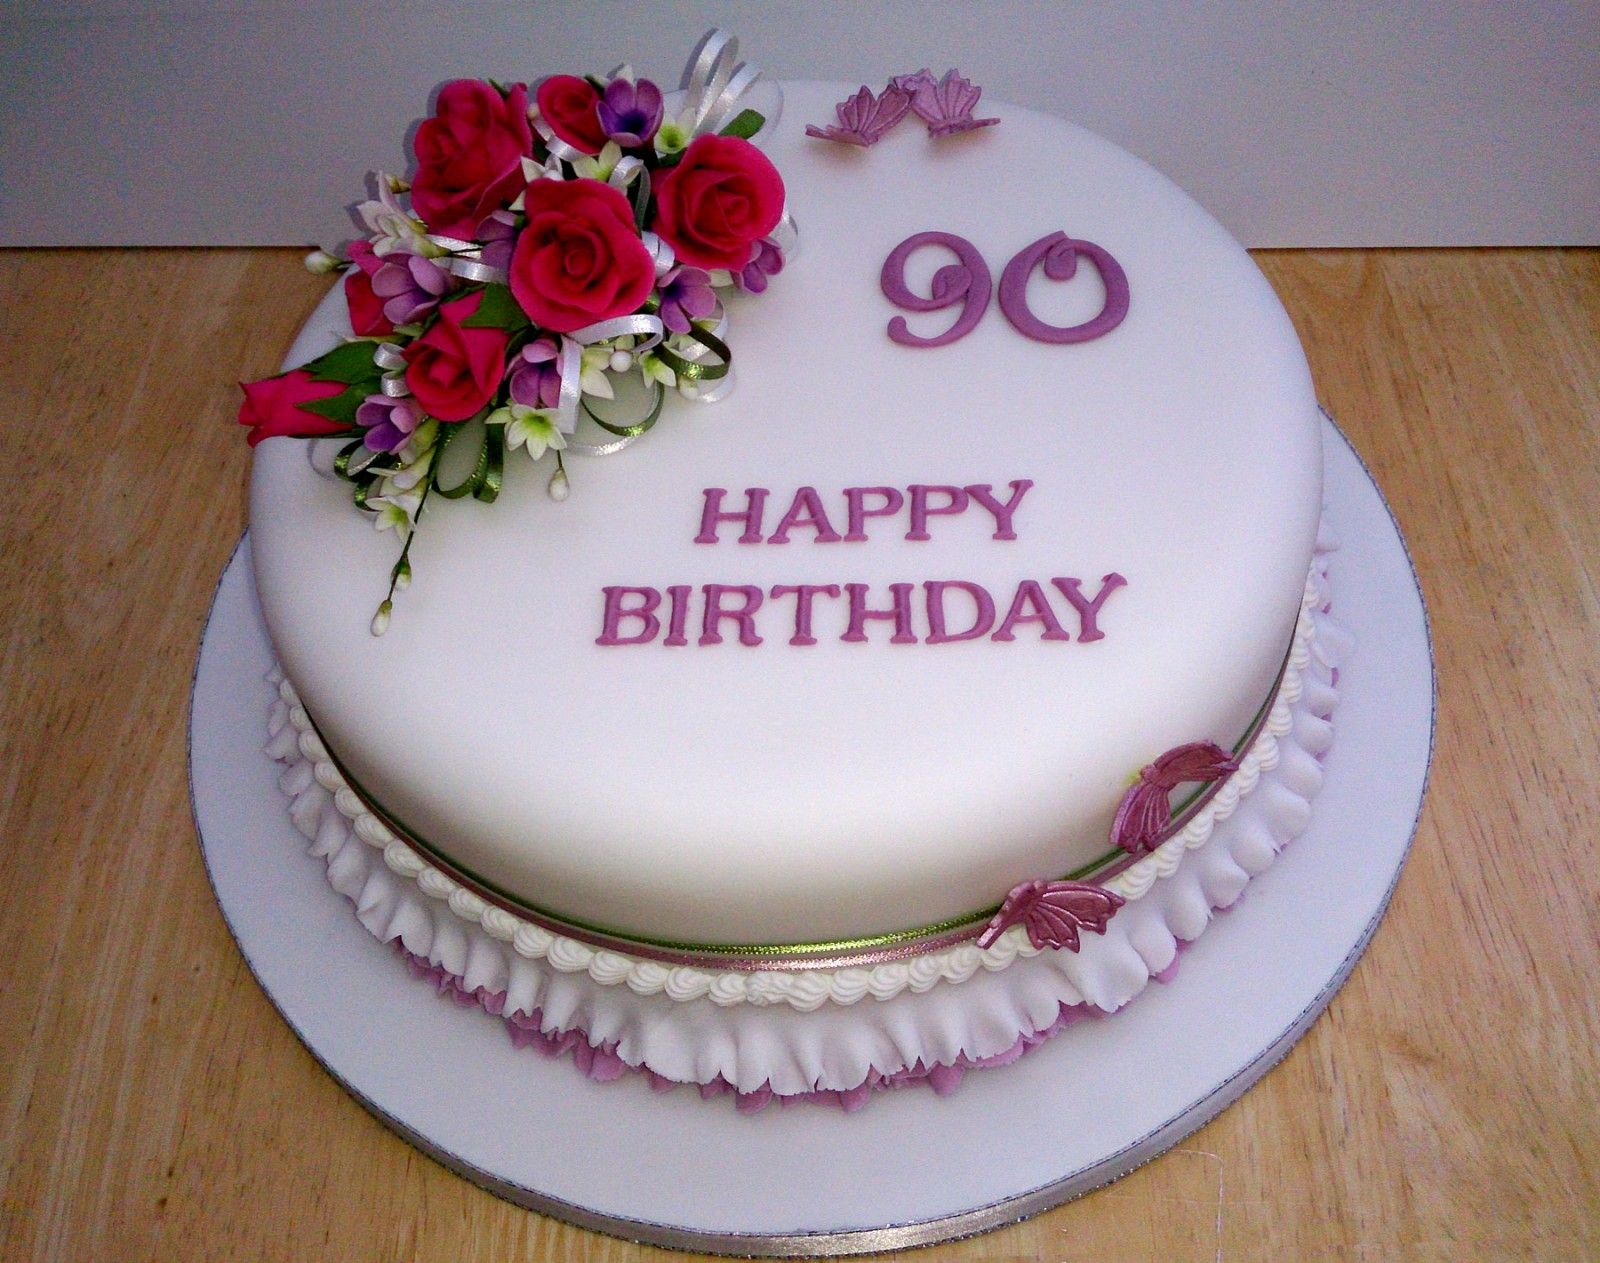 Magnificent 90Th Birthday Cake With Sugar Flower Spray Susies Cakes Personalised Birthday Cards Sponlily Jamesorg